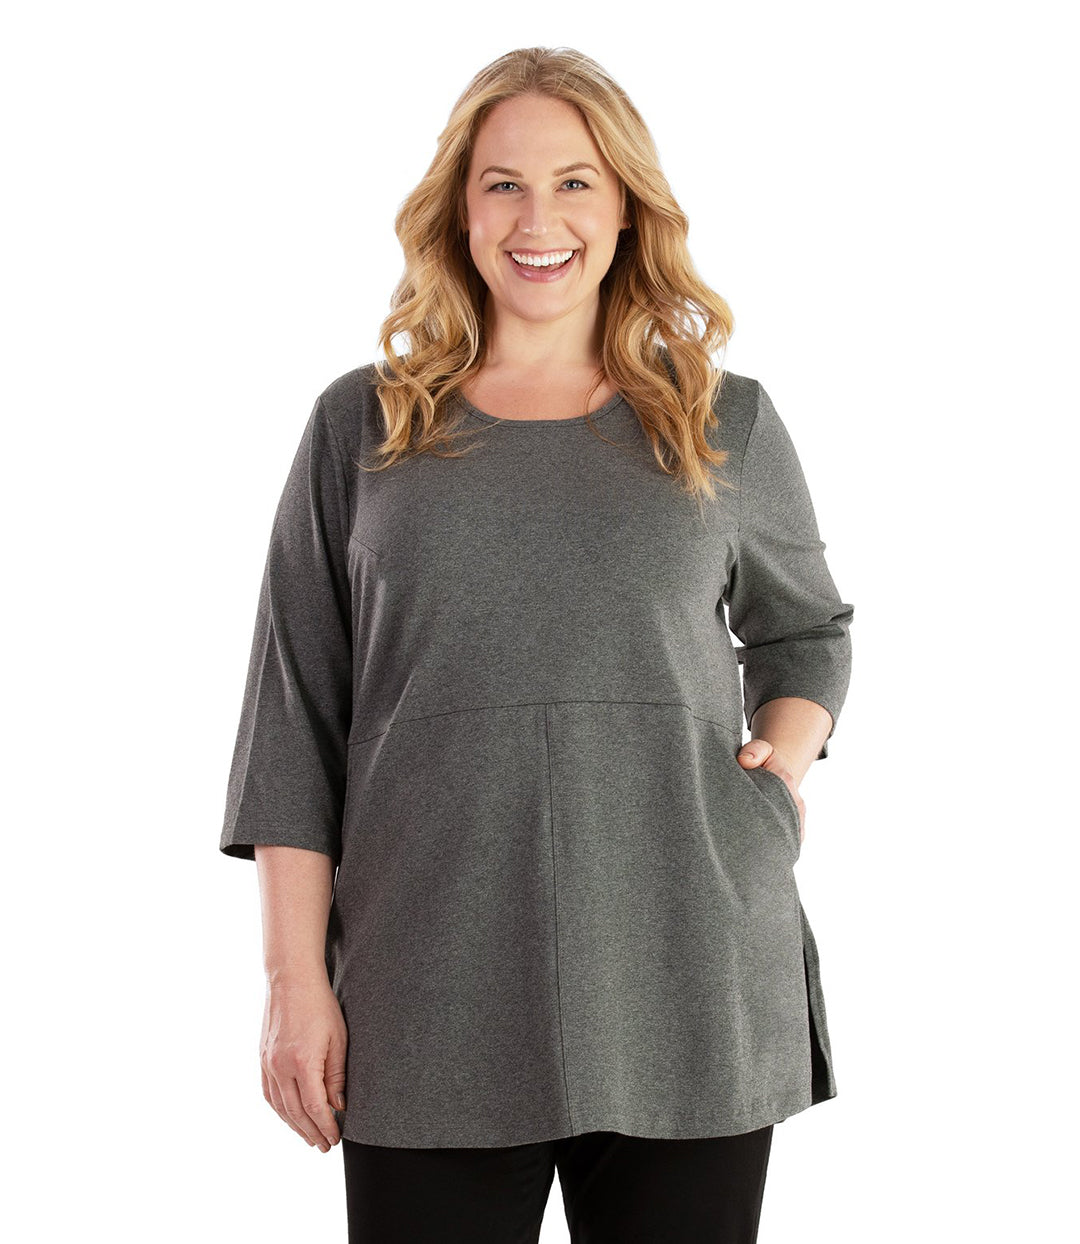 Stretch Naturals Empire Tunic with Pockets-Plus Size Activewear & Athletic Clothing-Hop Wo Trading Co Ltd-XL-Heather Charcoal-JunoActive